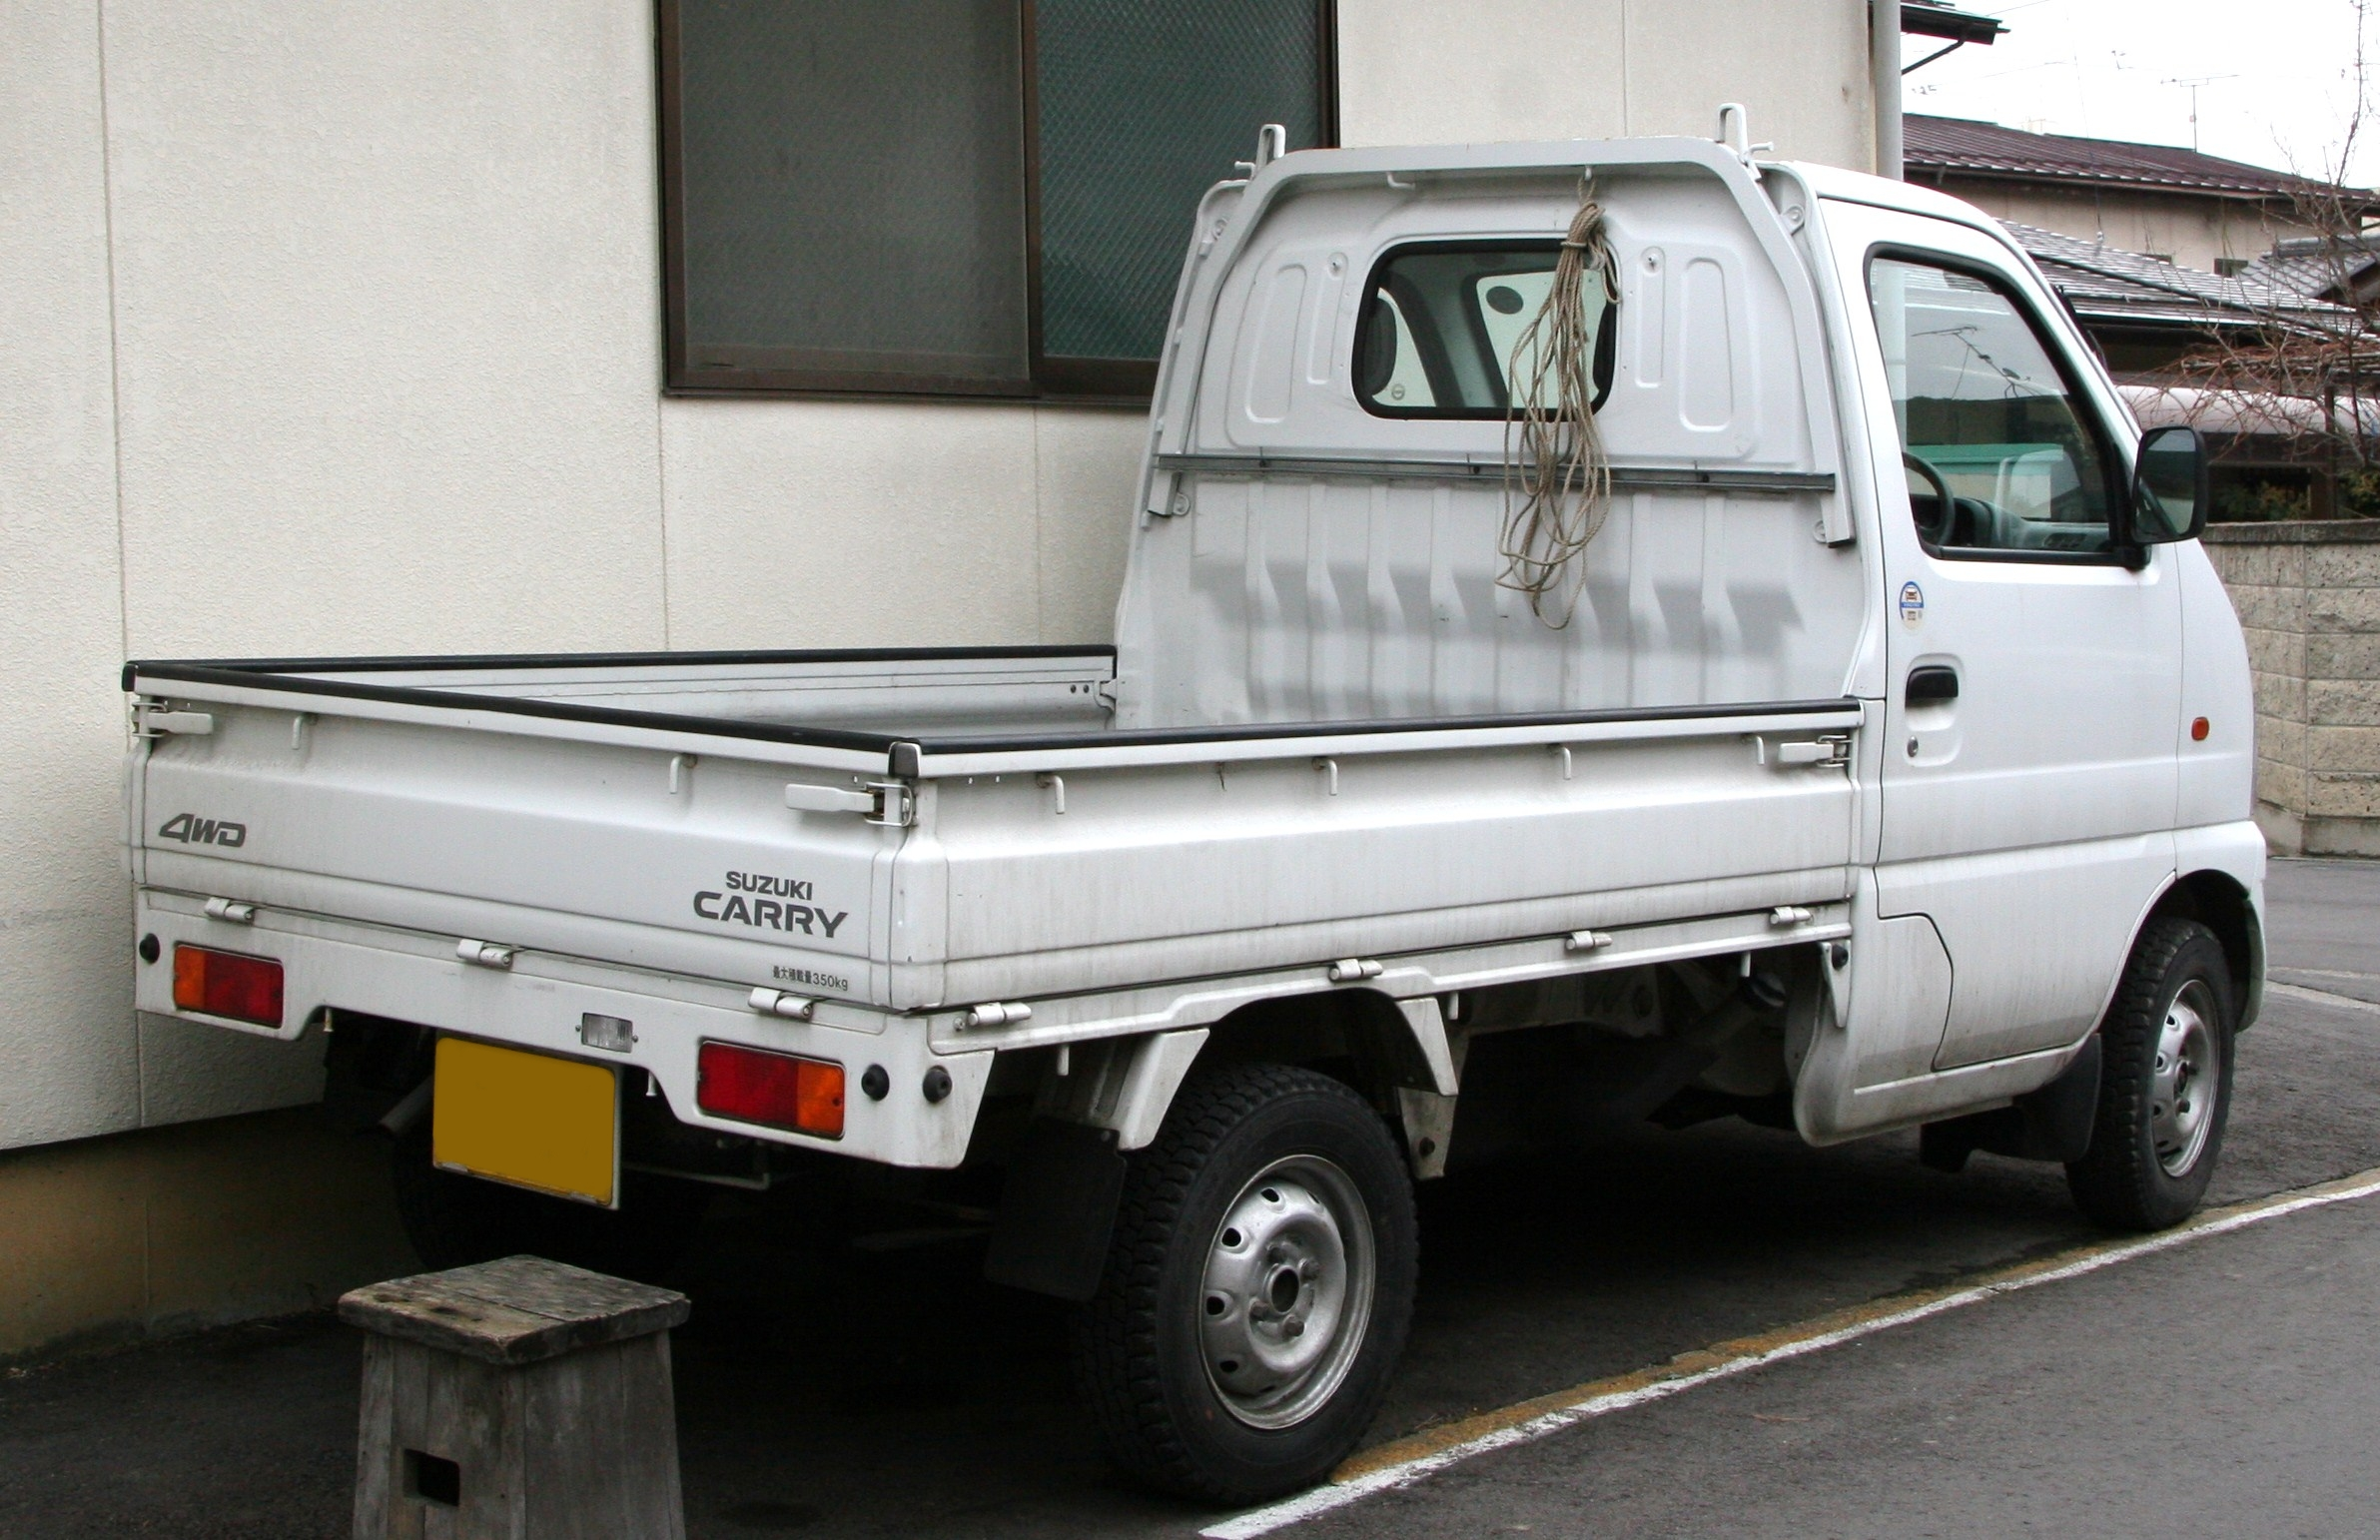 Suzuki carry photo - 3